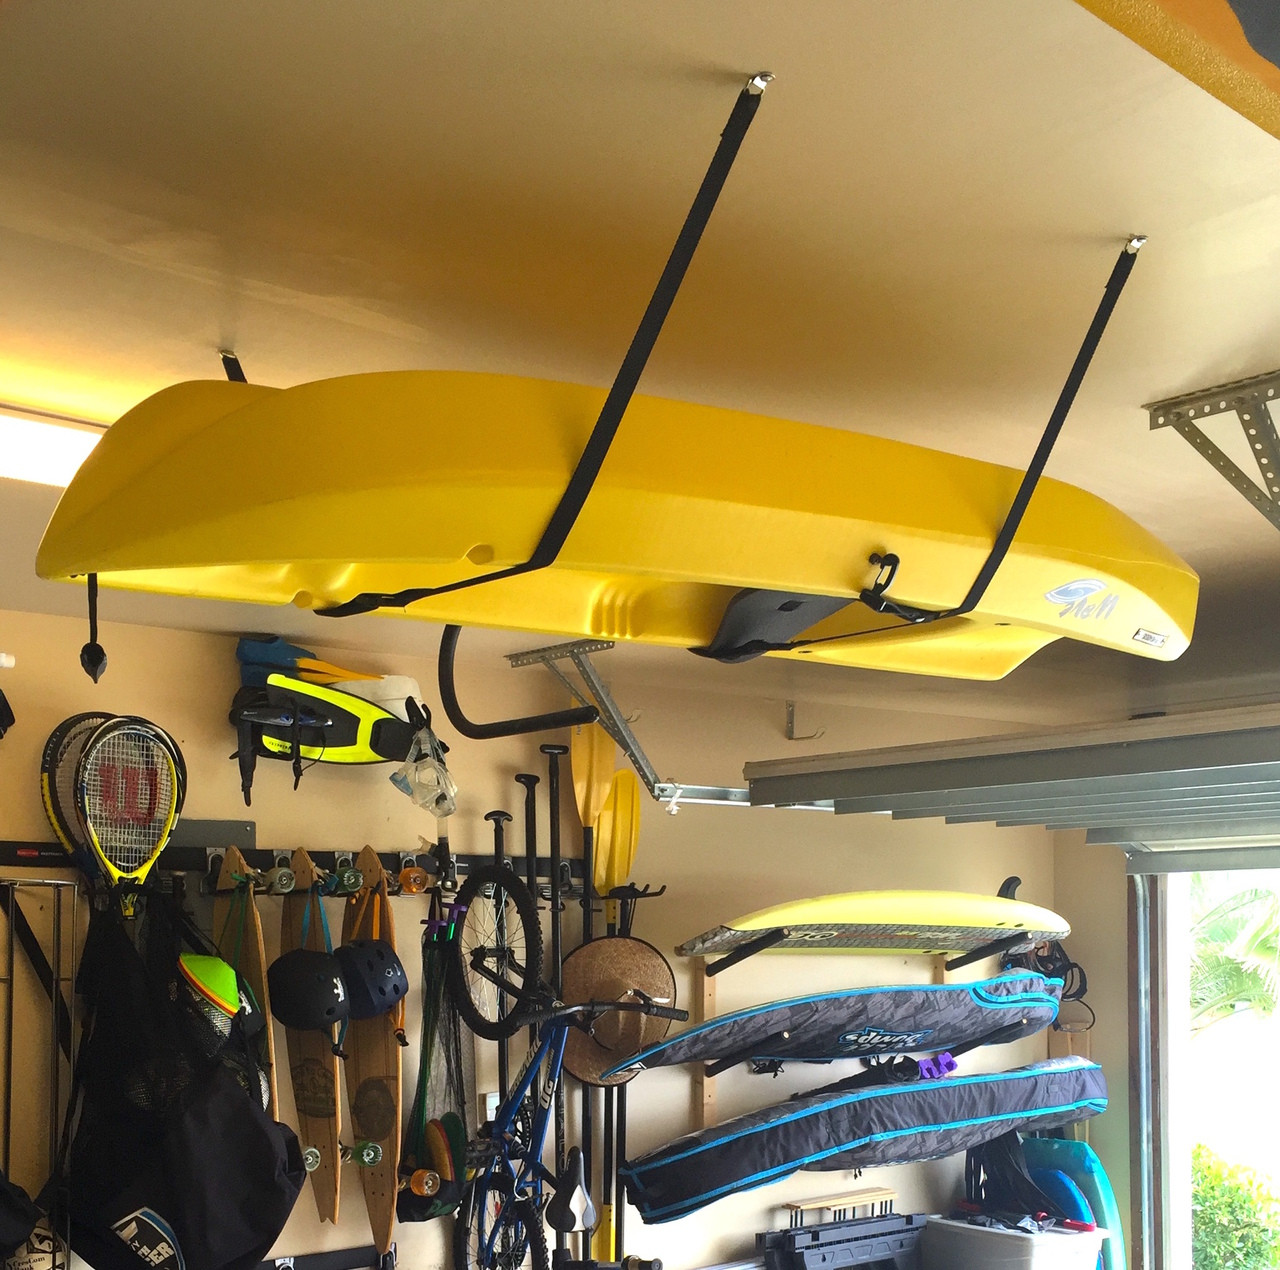 ts garage storage wall dos rack don and talic the accommodates do installs into tilt s widths boats winter kayak all blog of donts ack